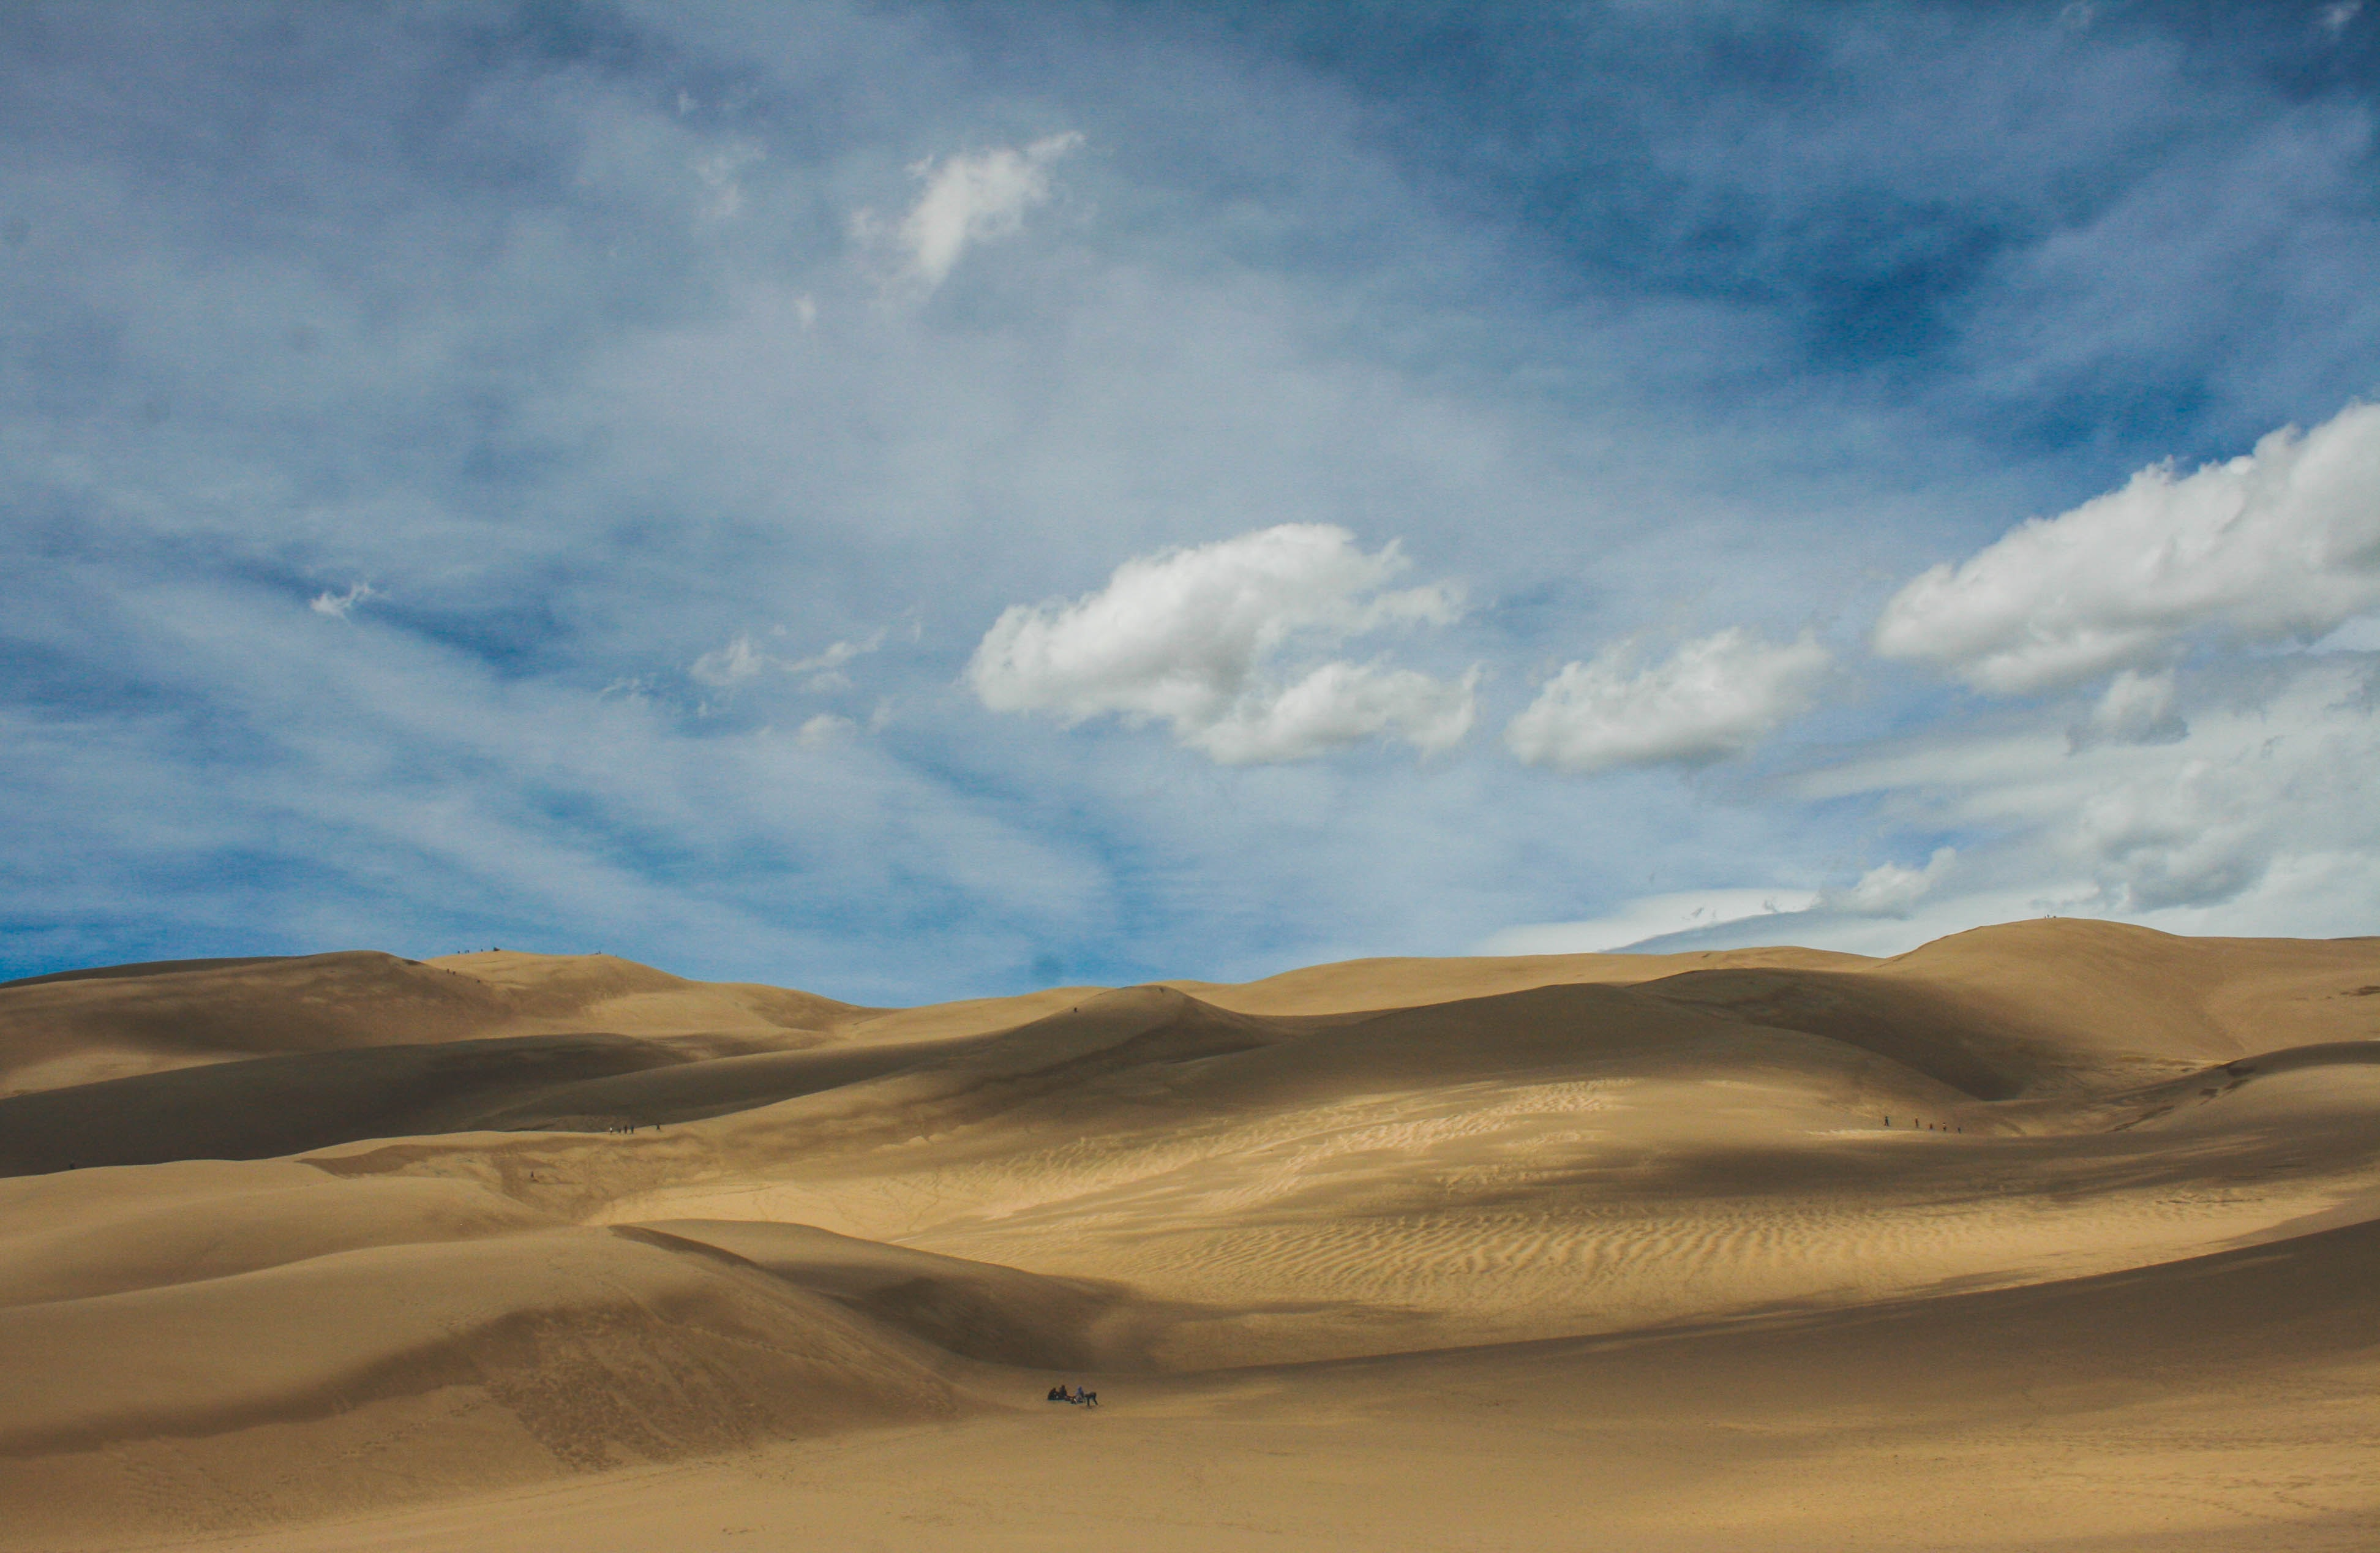 Camel walks through deserts of Great Sand Dunes National Park and Preserve